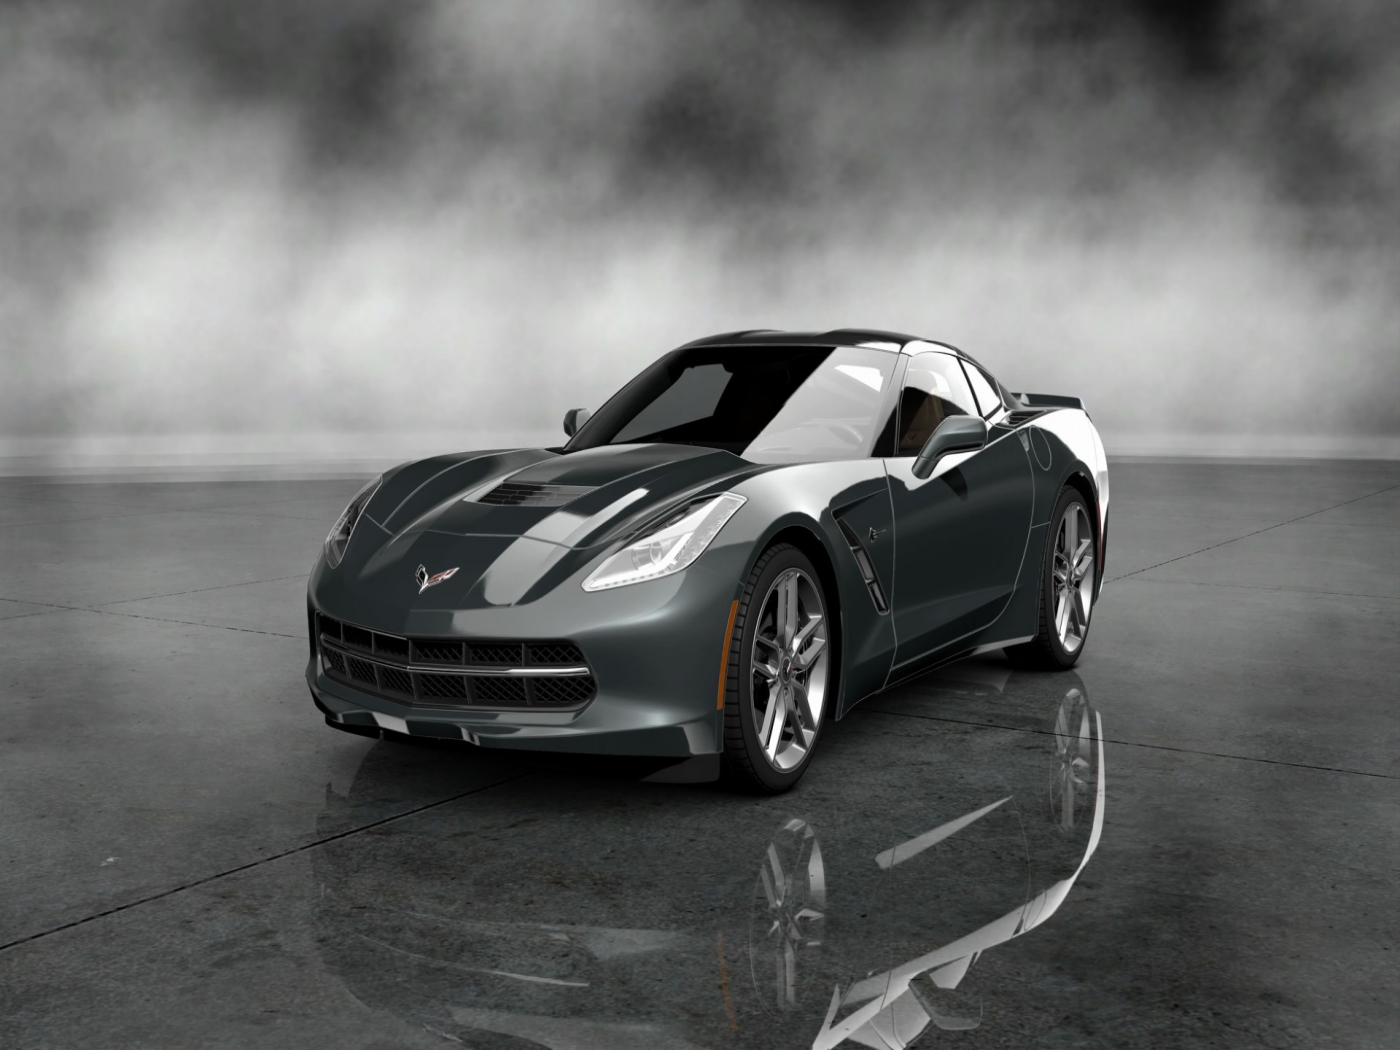 2014 corvette stingray black wallpaper 2014 Chevrolet Corvette Stingray Black HD Wallpaper 2014 Chevrolet